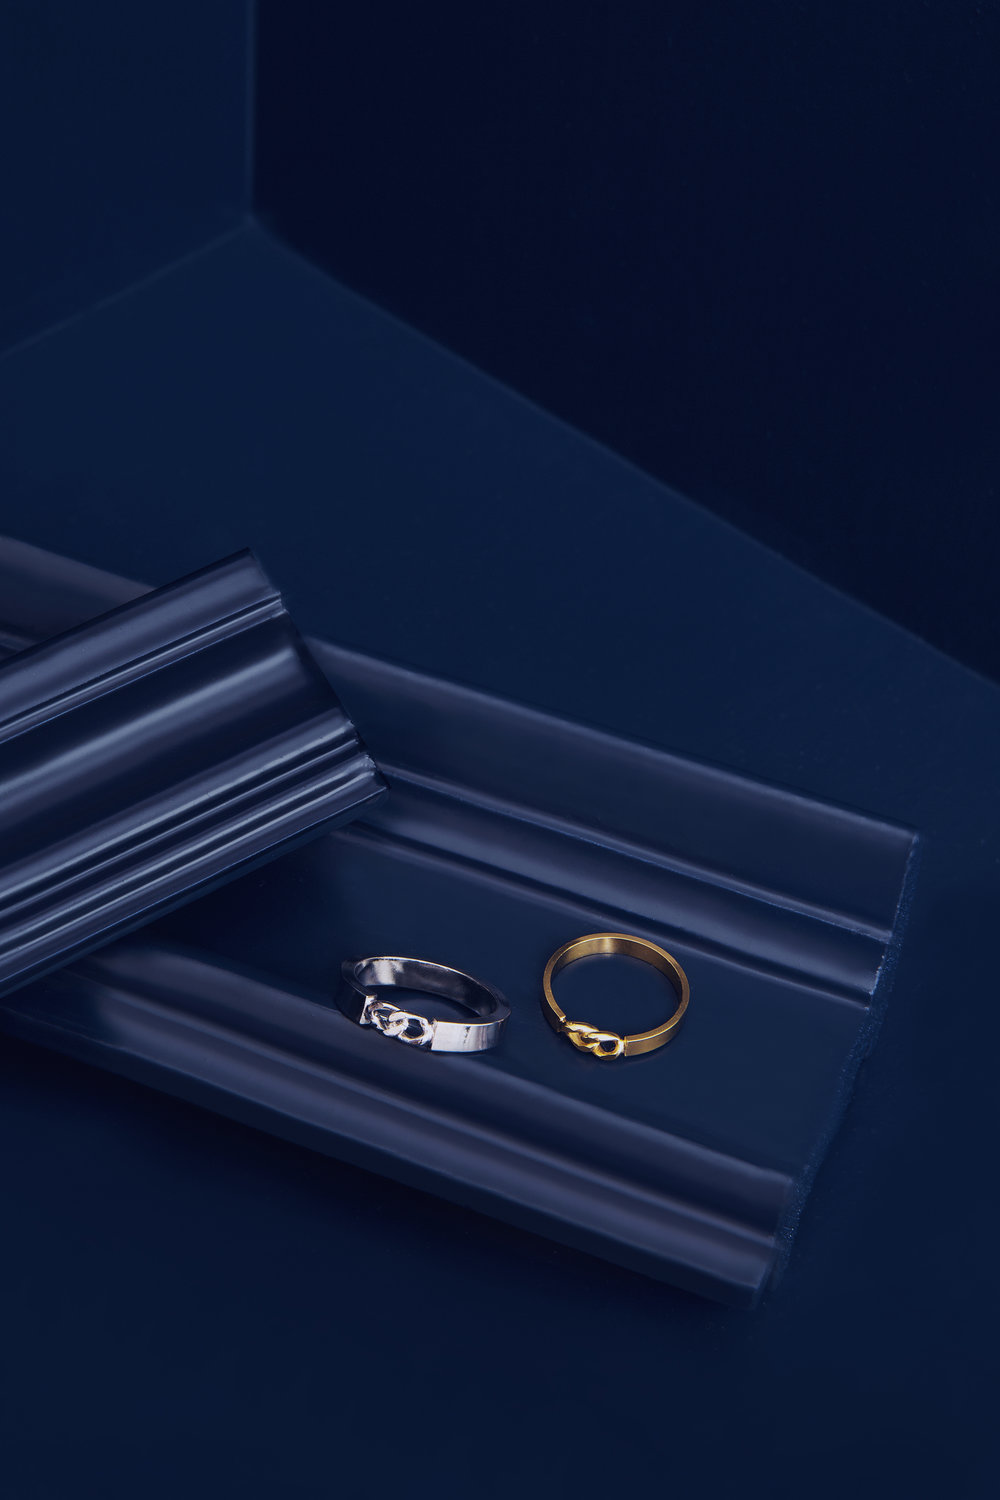 Studio Collect Jewelry - Wedding collection - Charite Smet